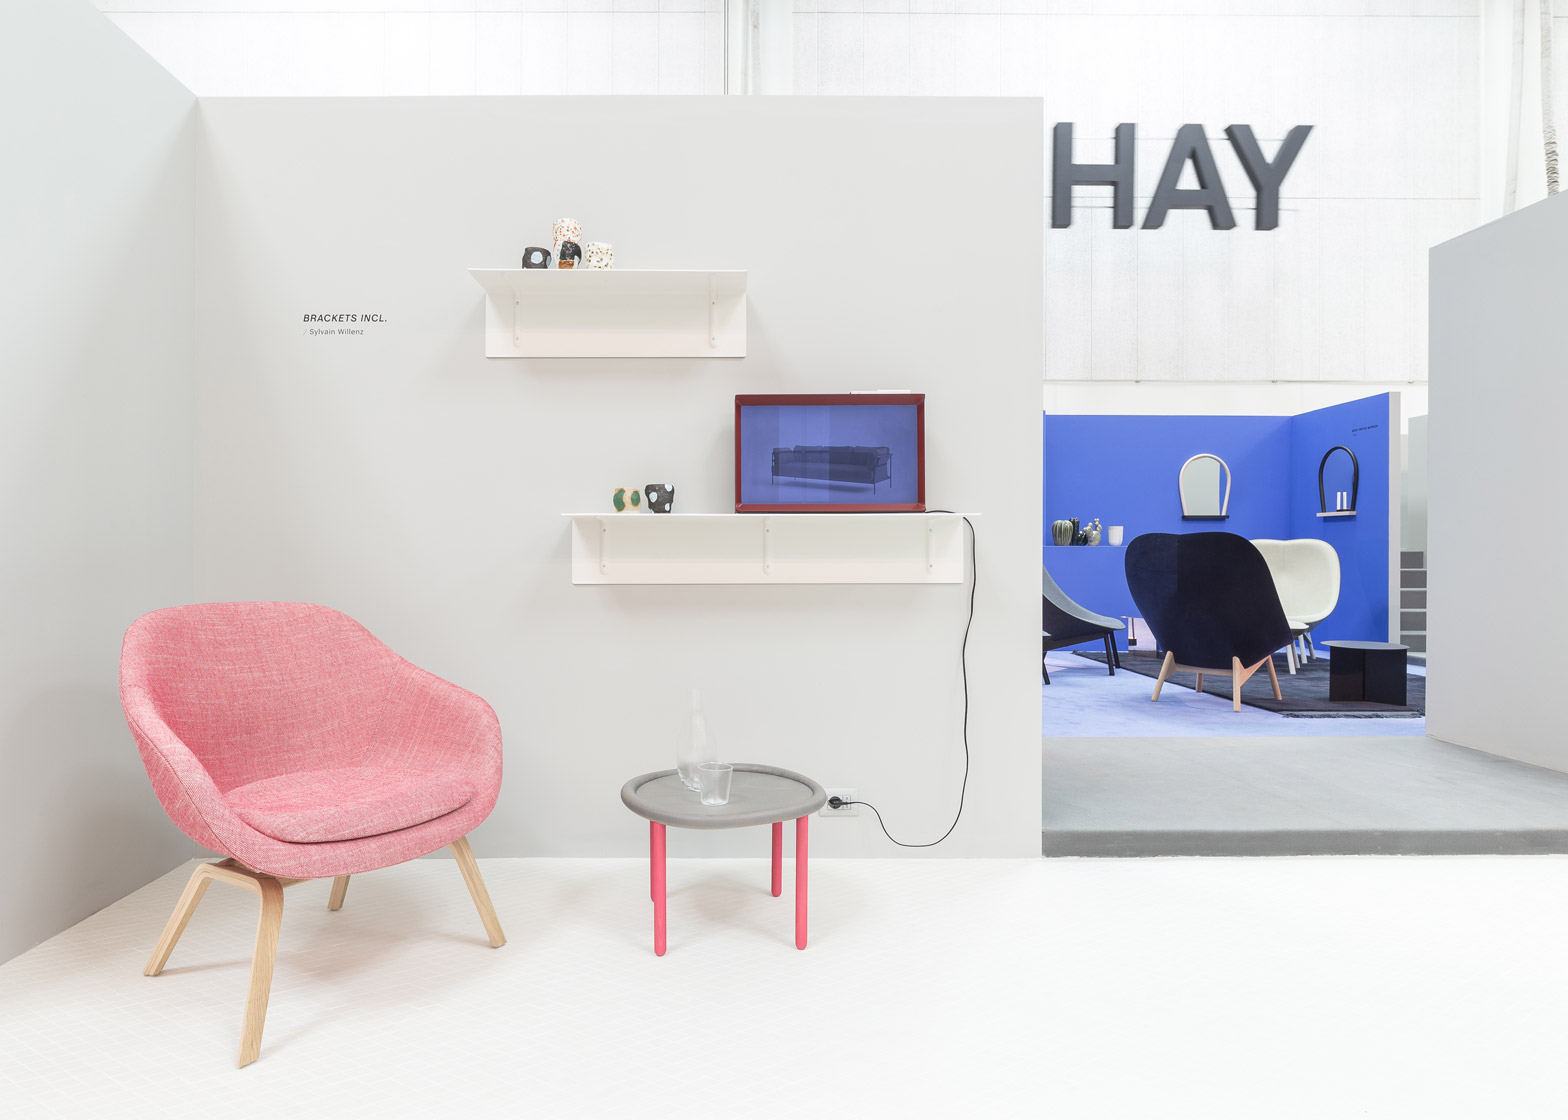 Hay exhibition milan design week 2016 dezeen 1568 1 wevux for Hay design milano